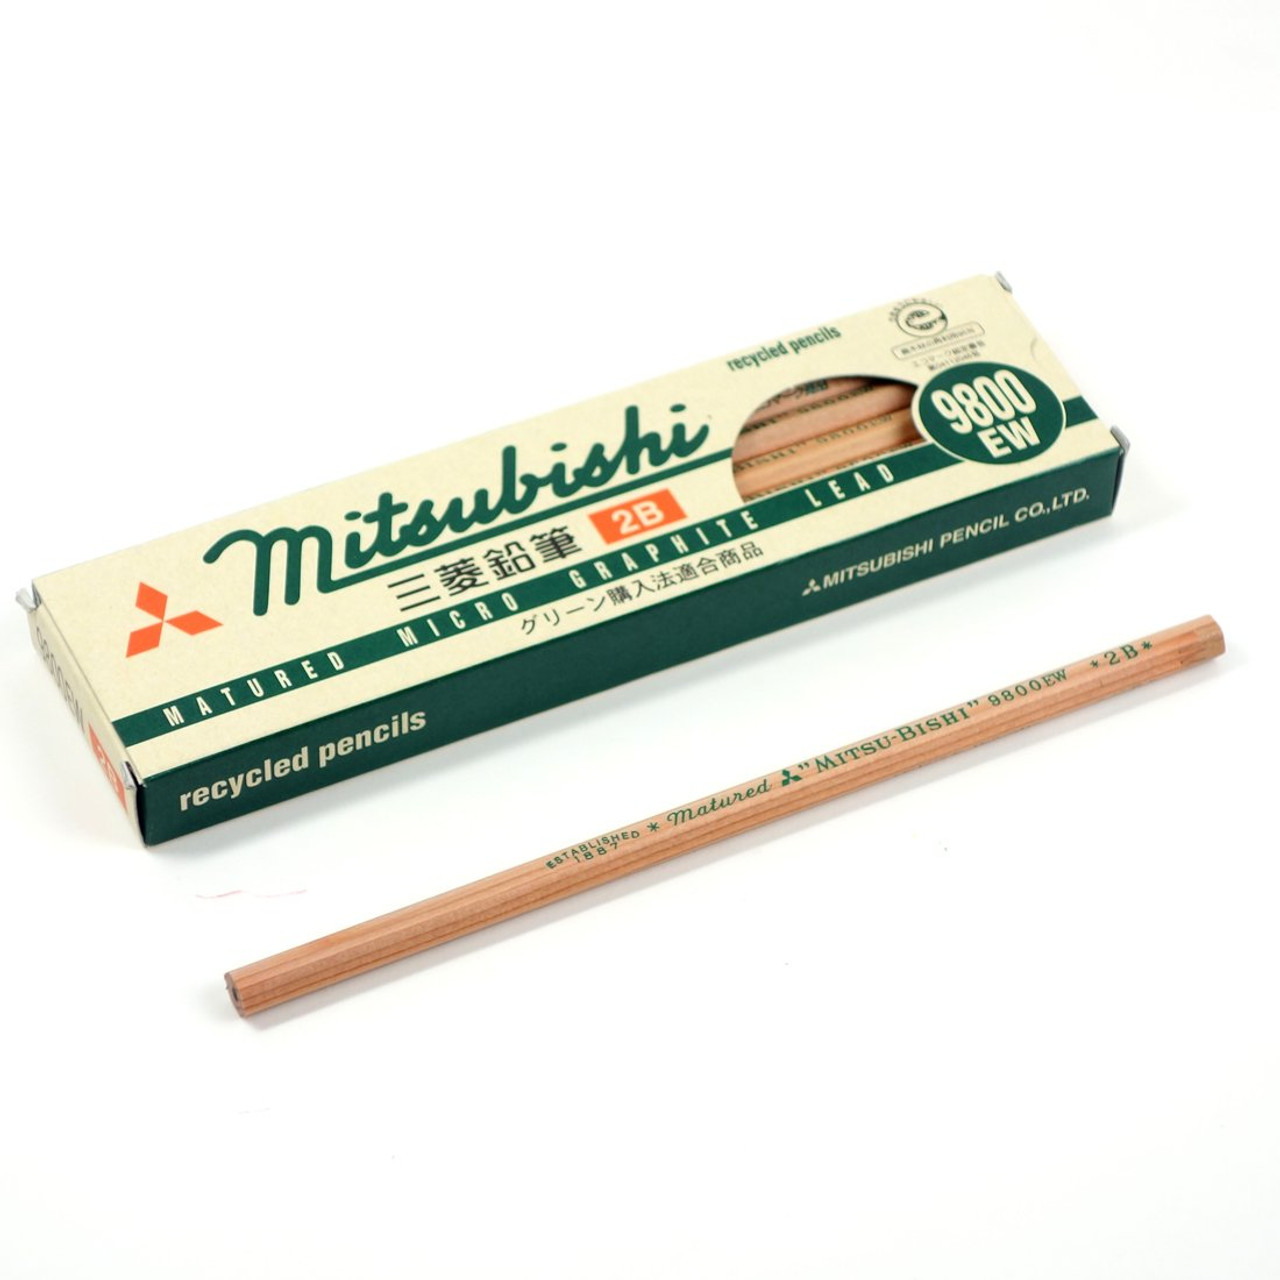 Mitsubishi 9800EW recycled pencil packaging